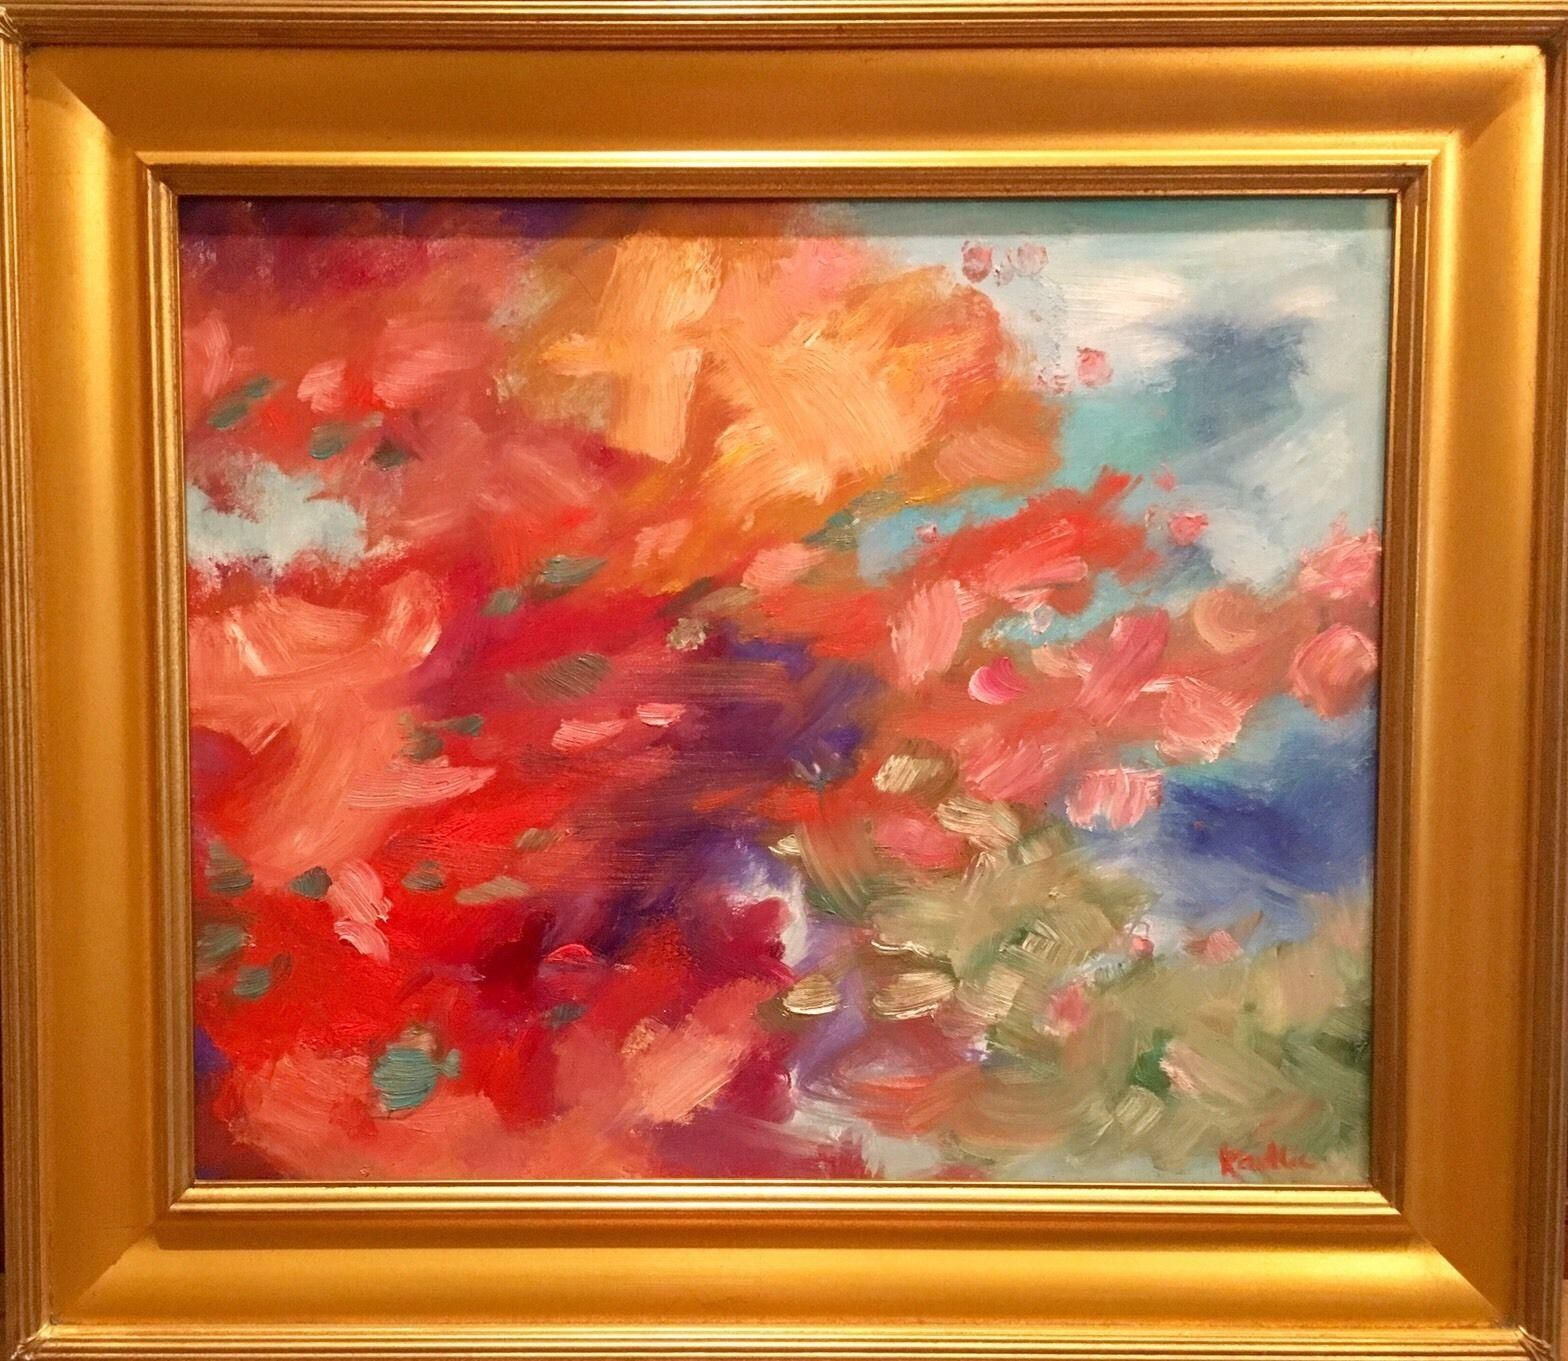 Abstract Color Explosion, Original Oil Painting by artist Sarah ...